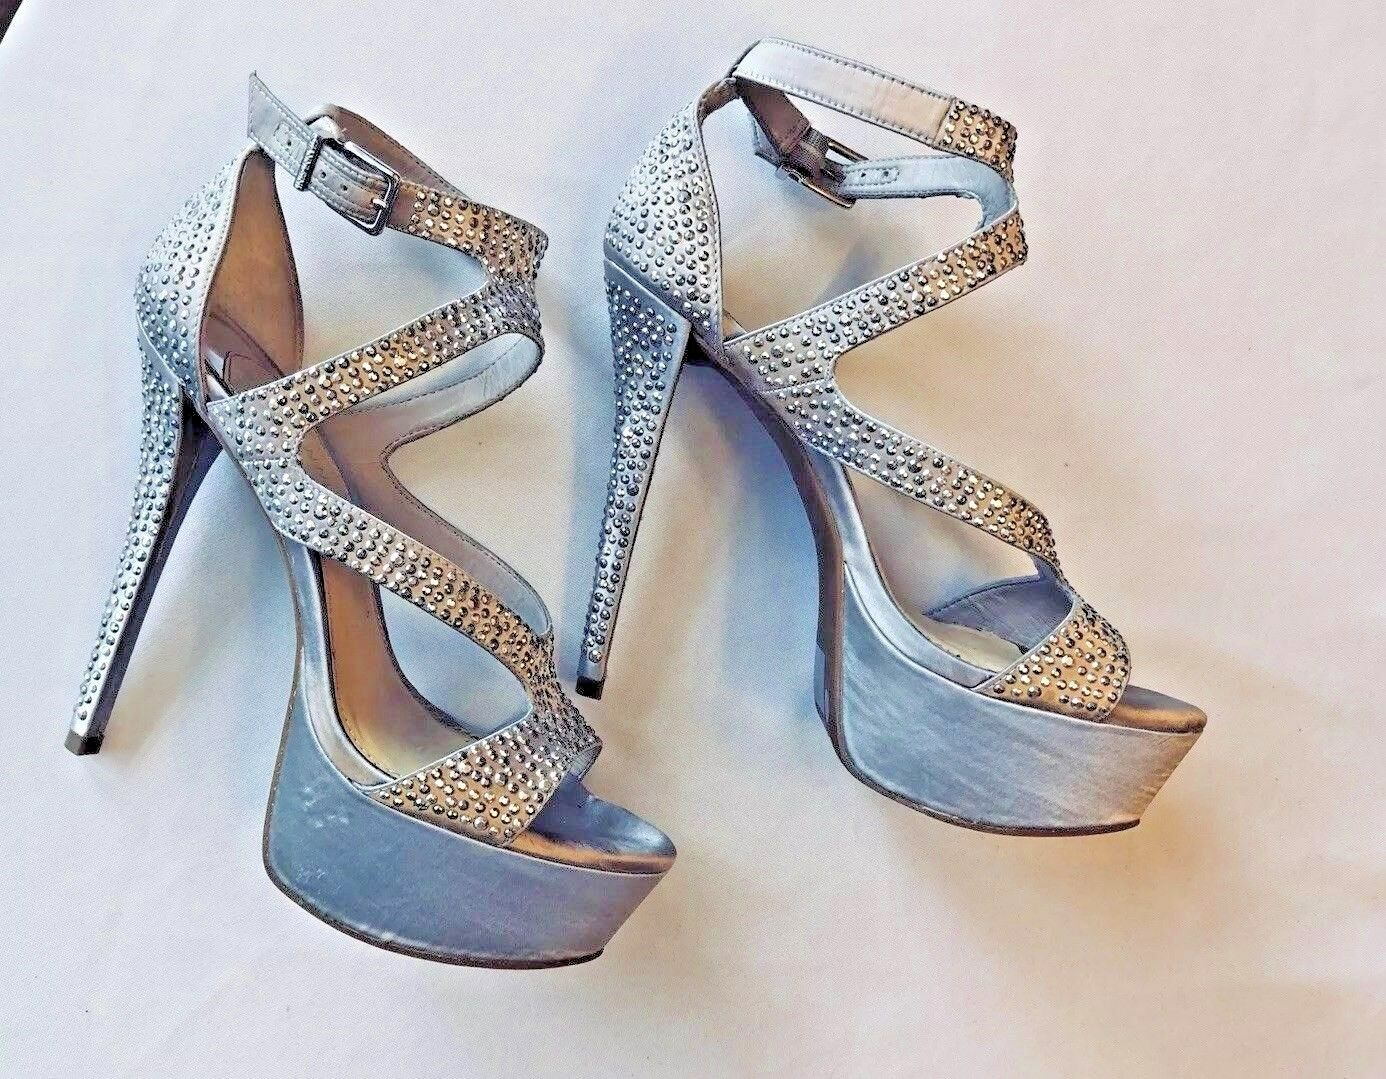 GIANNI BINI Womens Stiletto Platform Ankle Strap Sandals Size 7.5M Silver